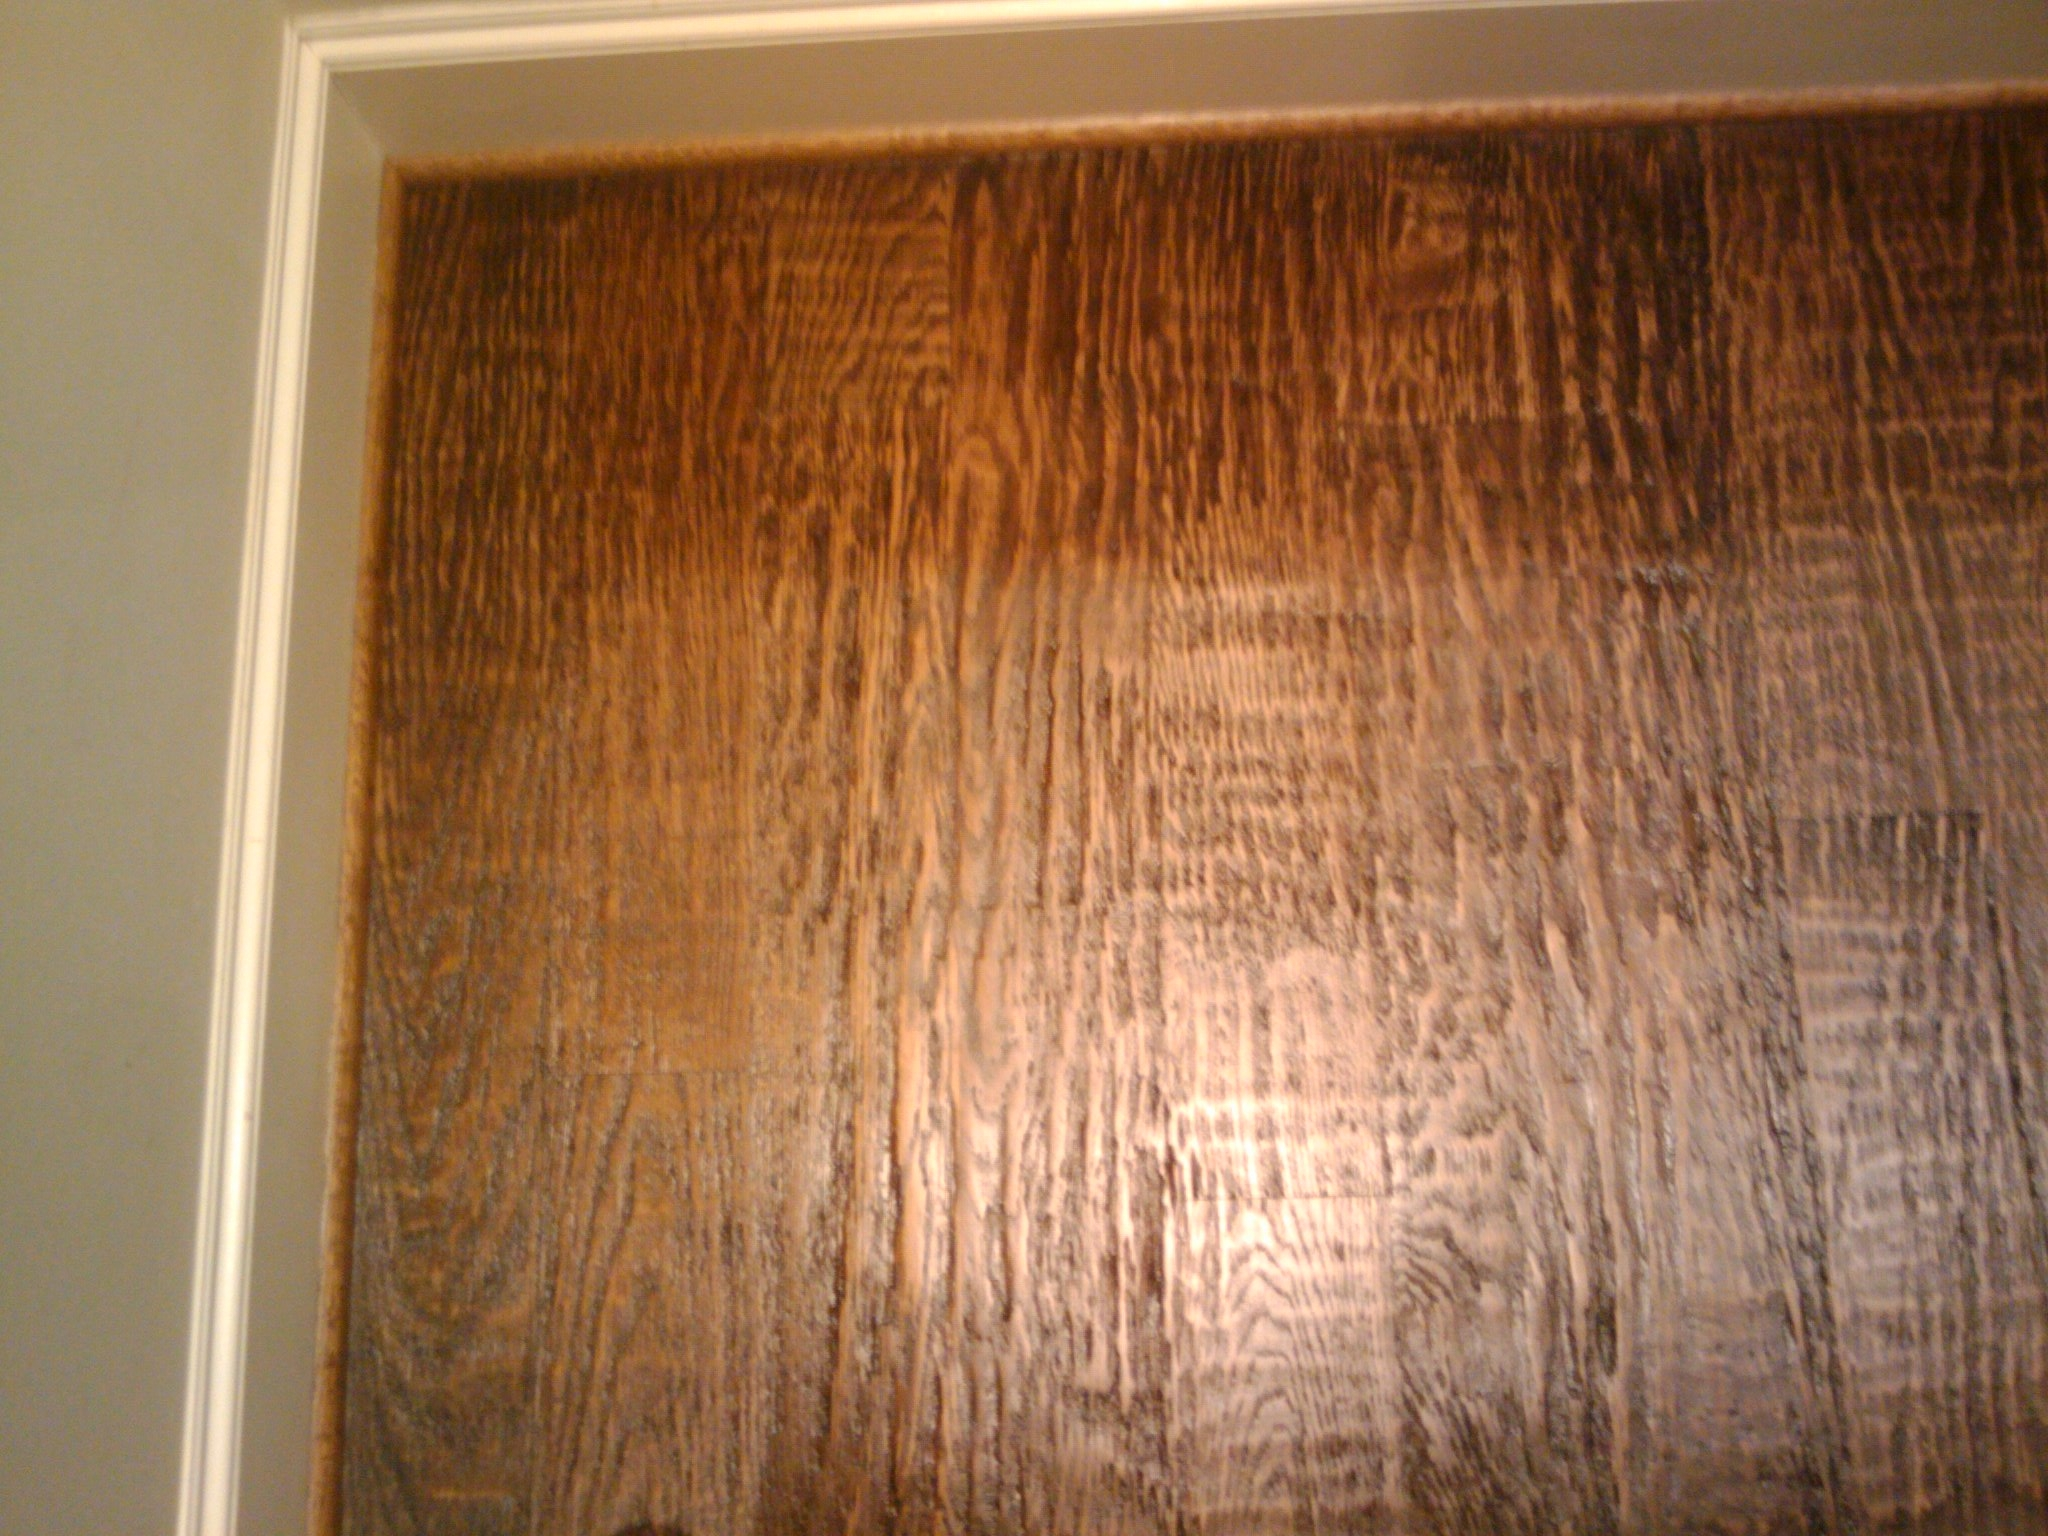 Hand Scraped Wood Floors With The Grain